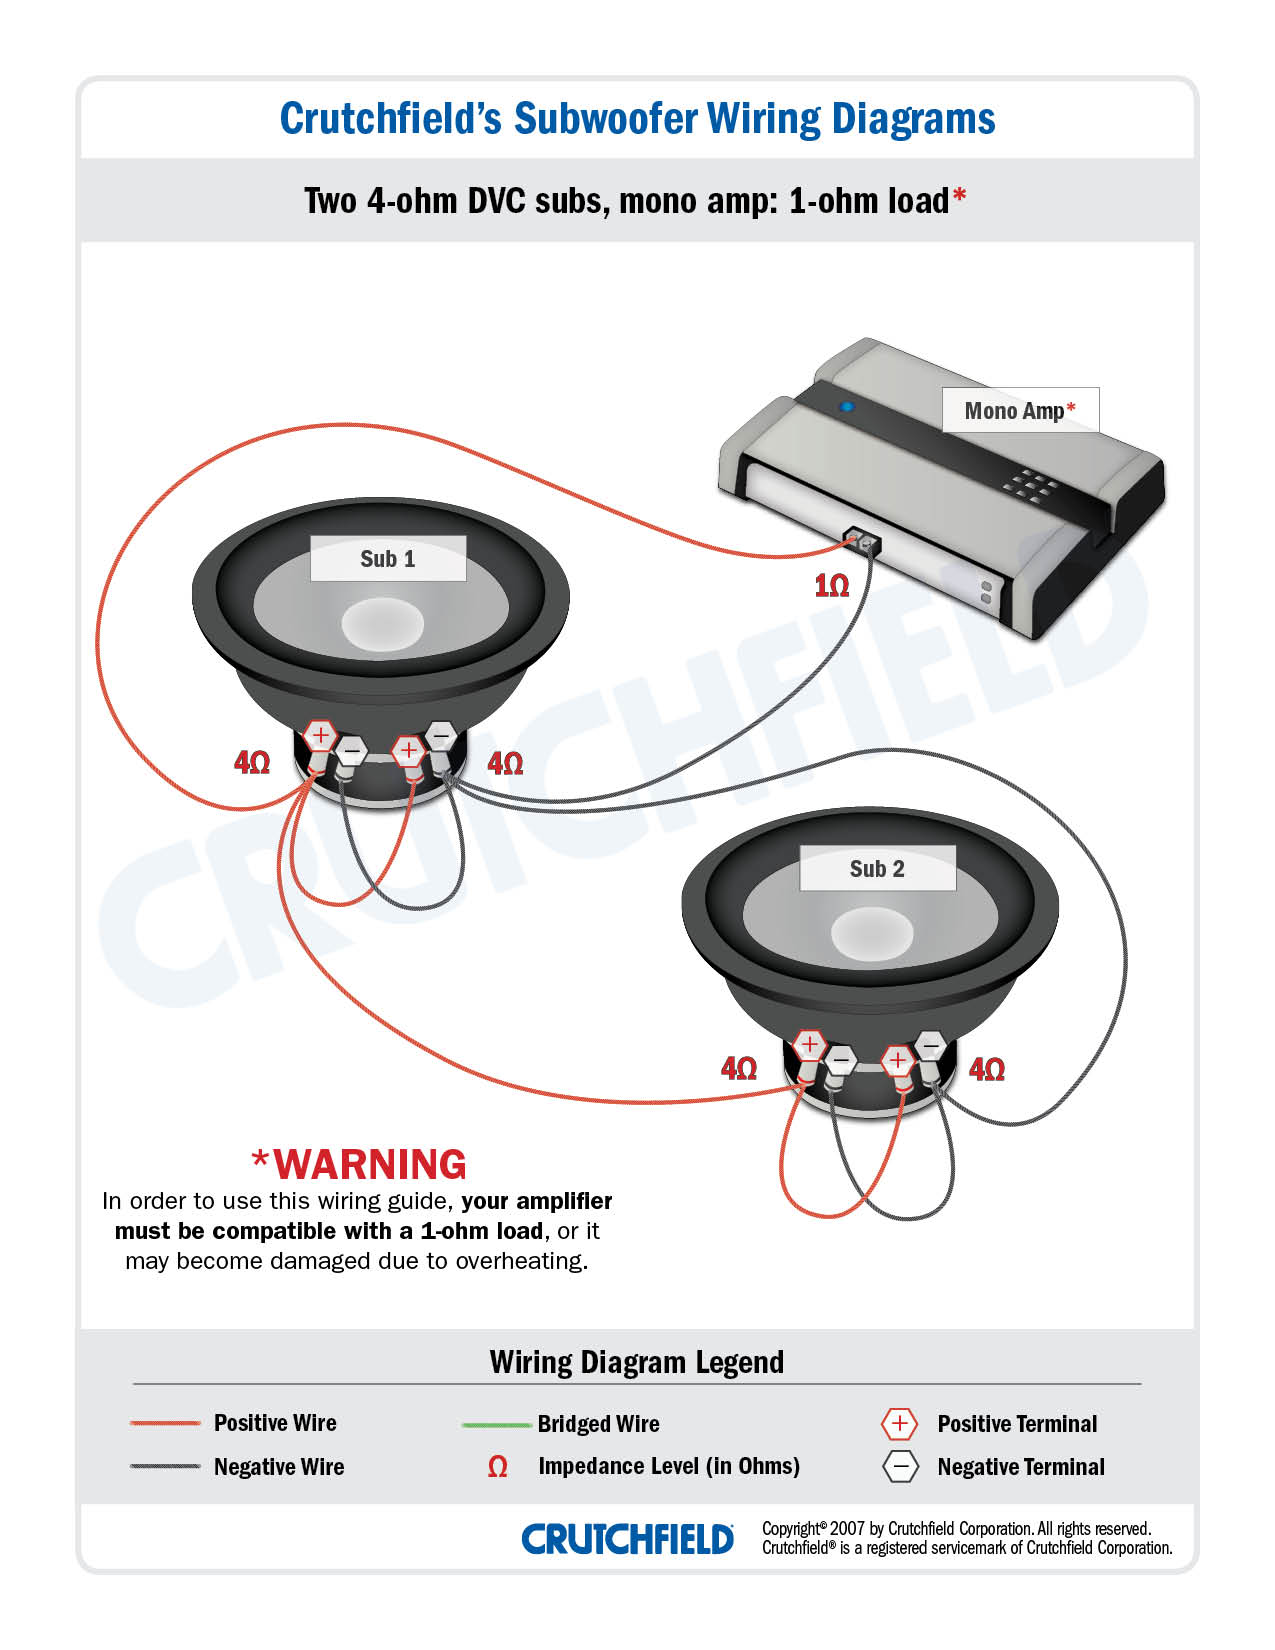 2 DVC 4 ohm mono low imp subwoofer wiring diagrams home powered subwoofer wiring diagrams at virtualis.co